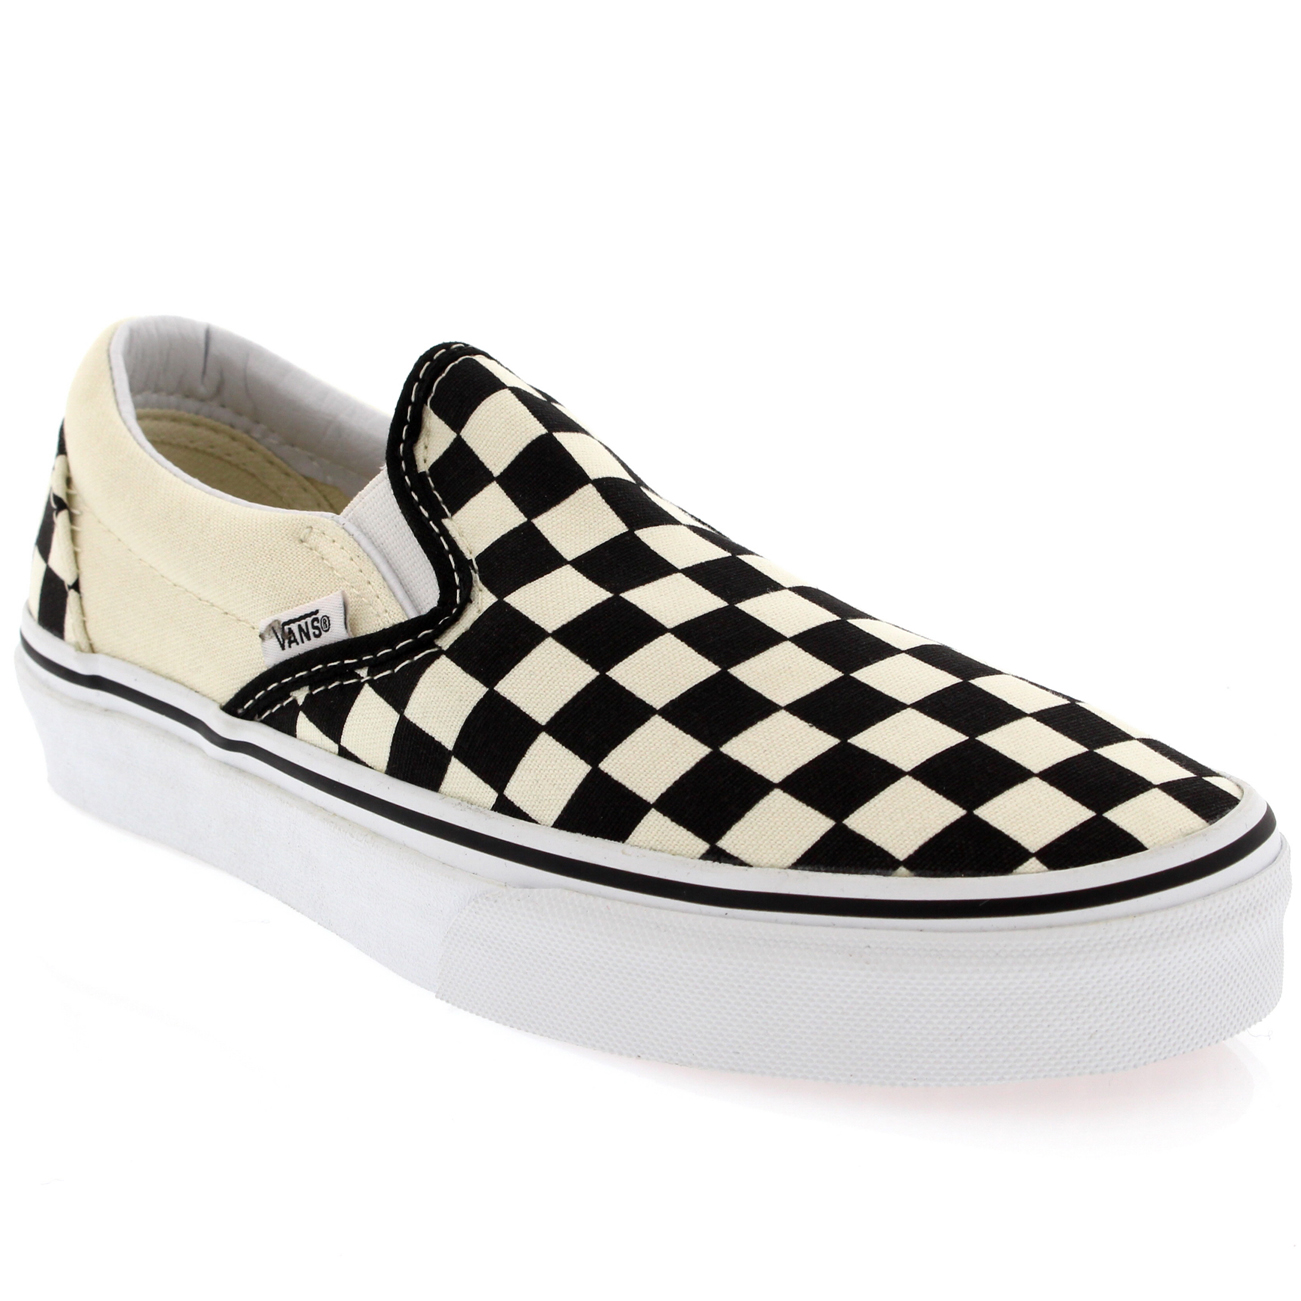 mens vans shoes uk